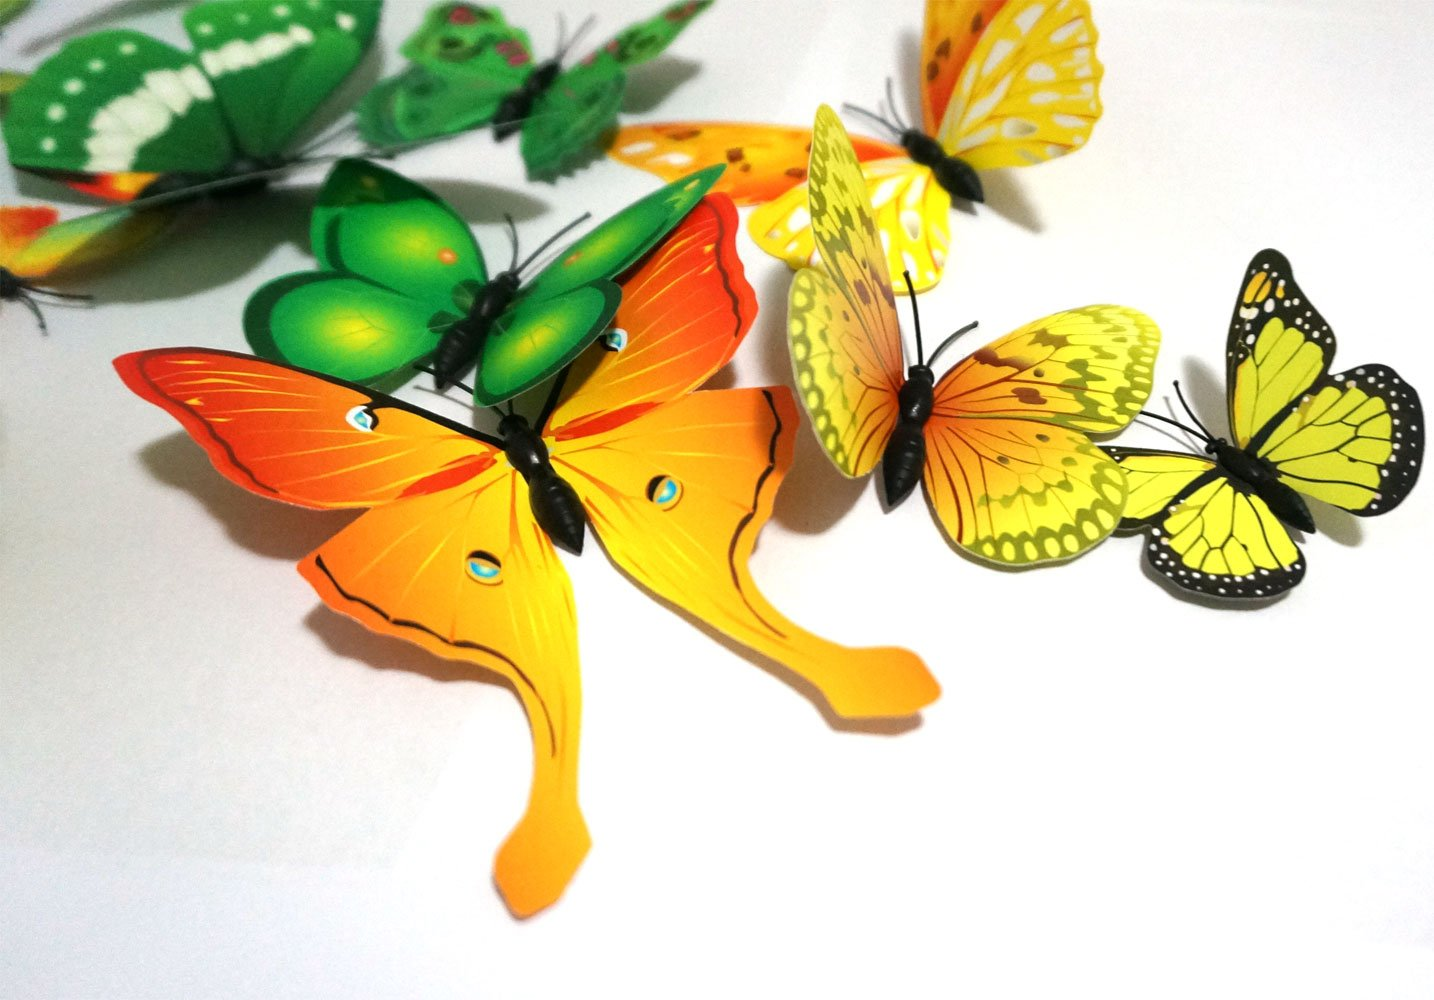 Amazon.com: 24 PCS PVC 3D Butterfly Fridge Magnets Refrigerator ...